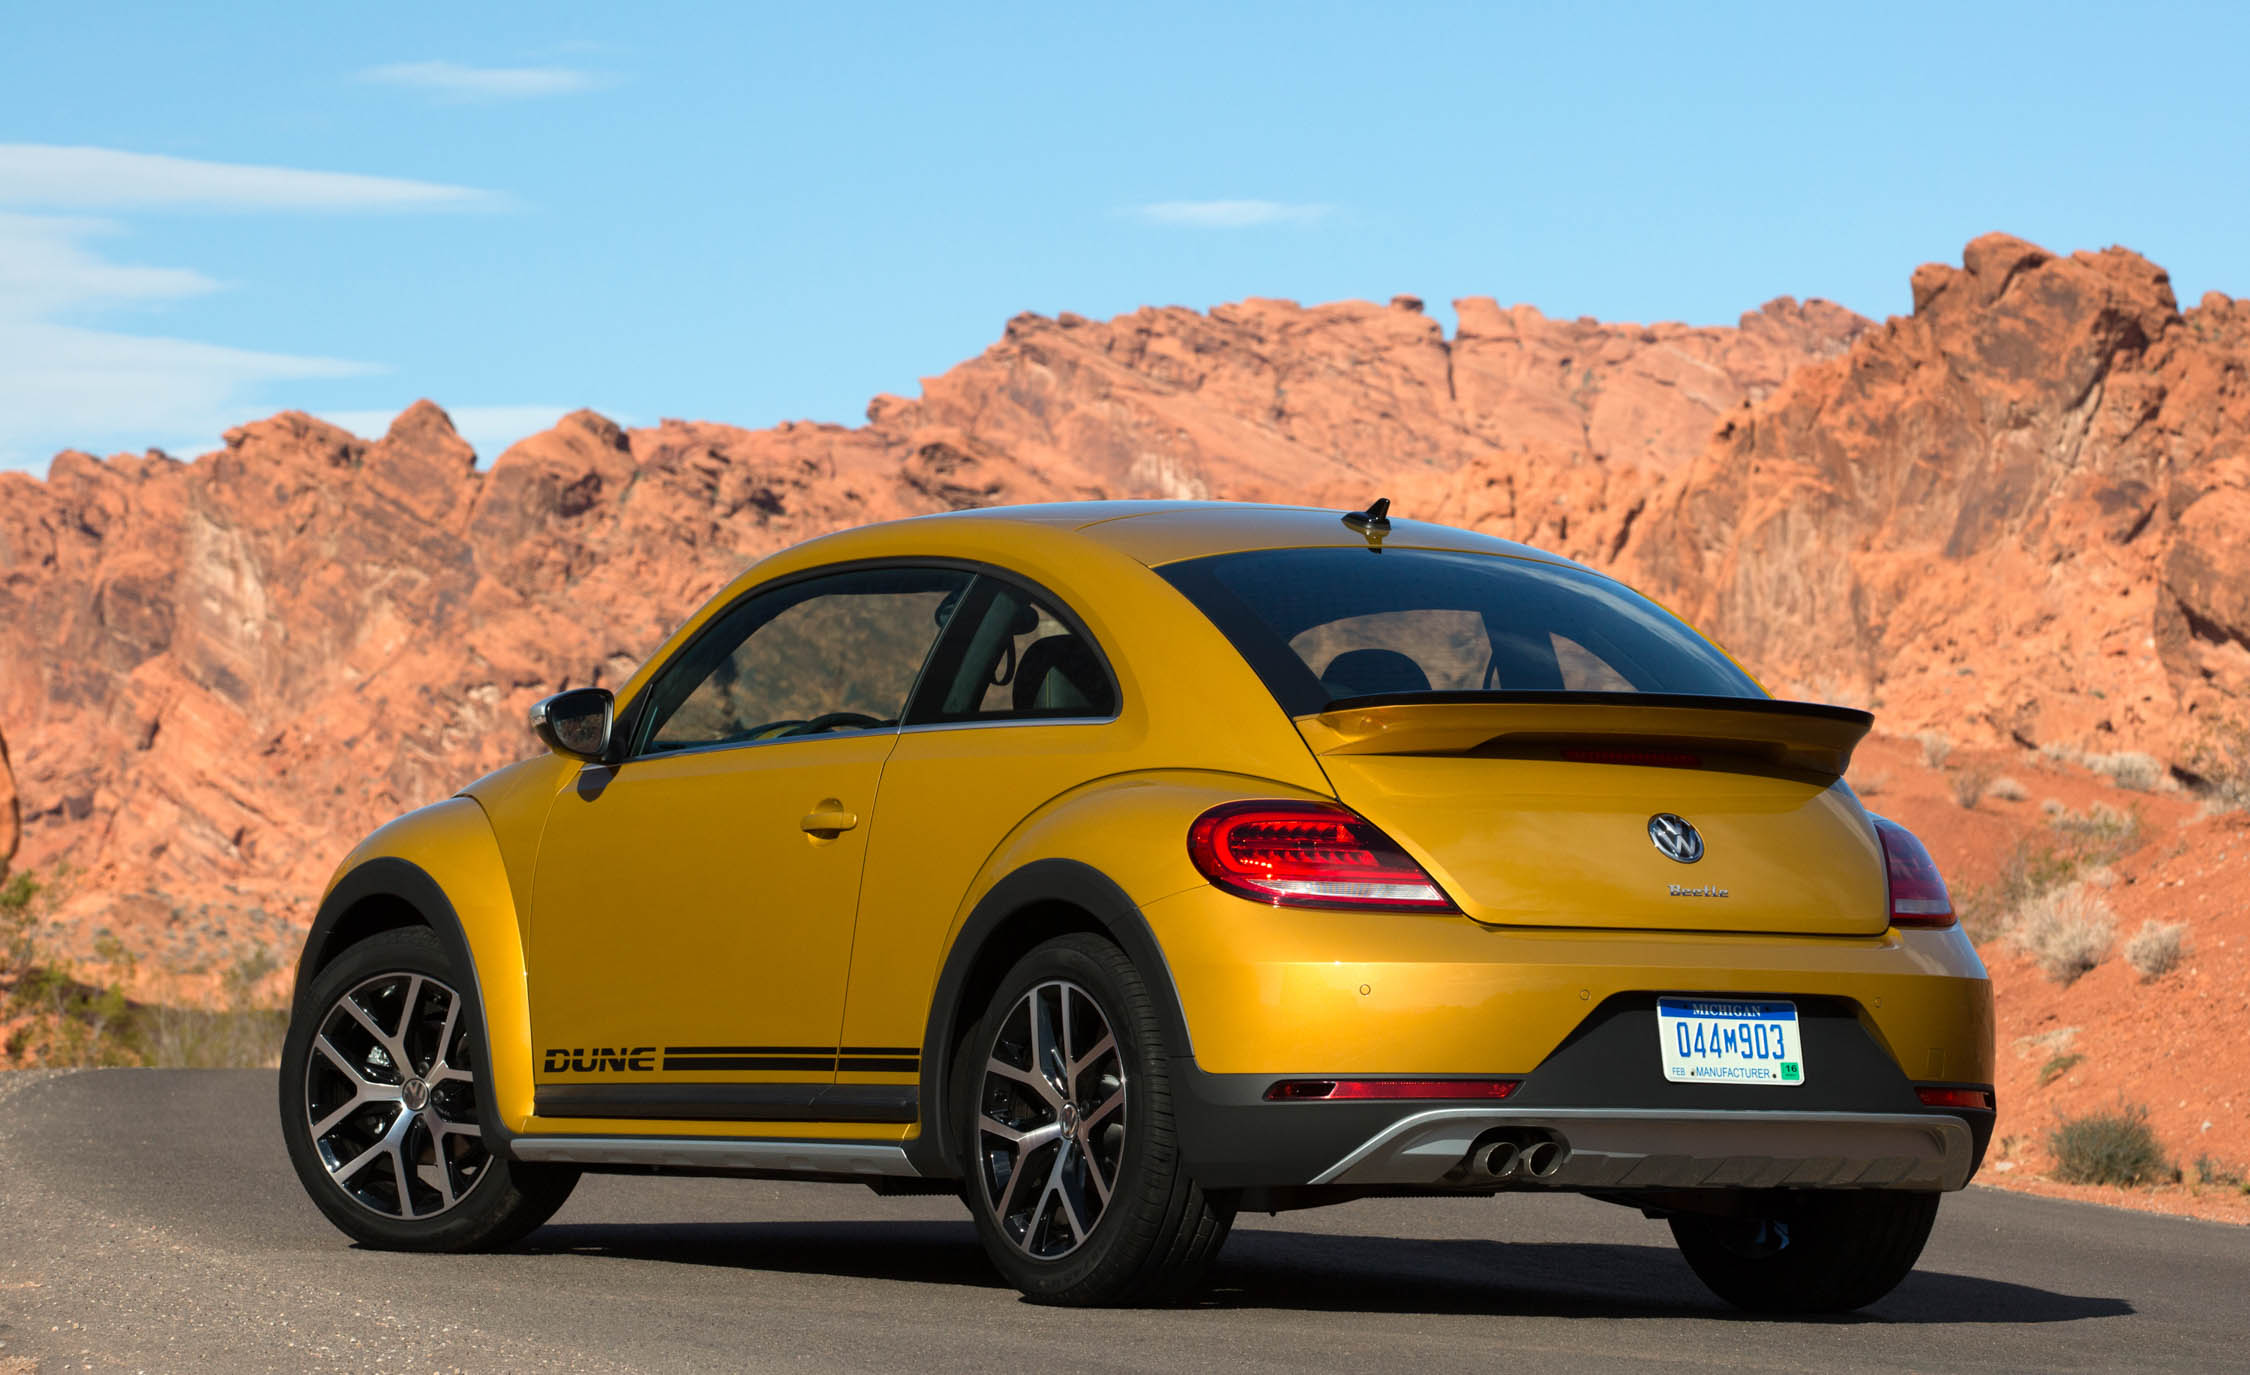 2016 Volkswagen Beetle Dune Coupe Exterior Full Rear And Side (Photo 13 of 32)